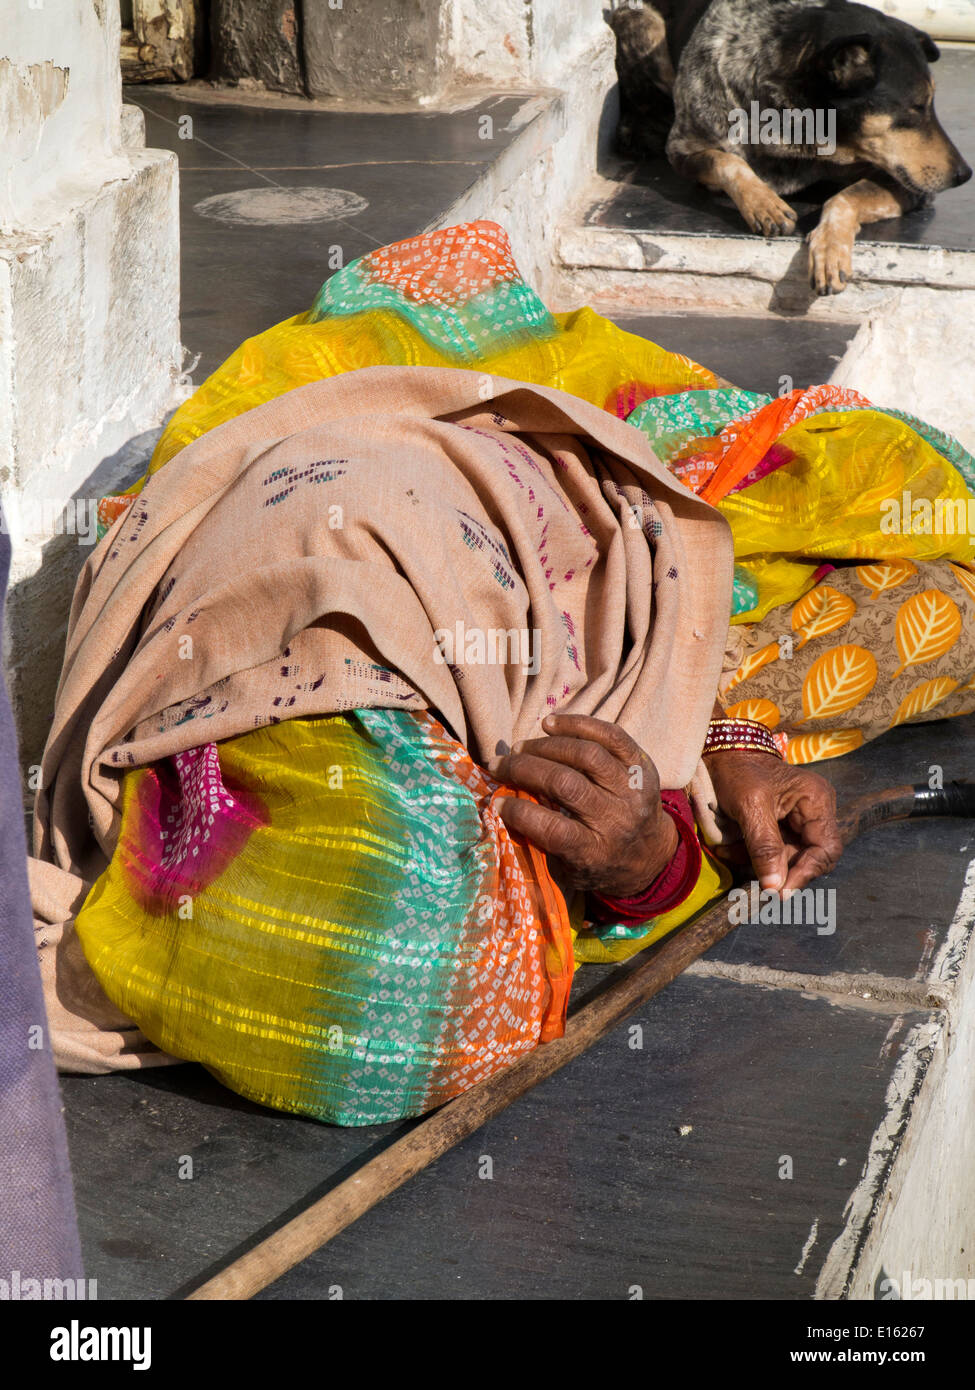 India, Rajasthan, Udaipur, Chandpole, old woman and dog asleep outside in sunshine - Stock Image